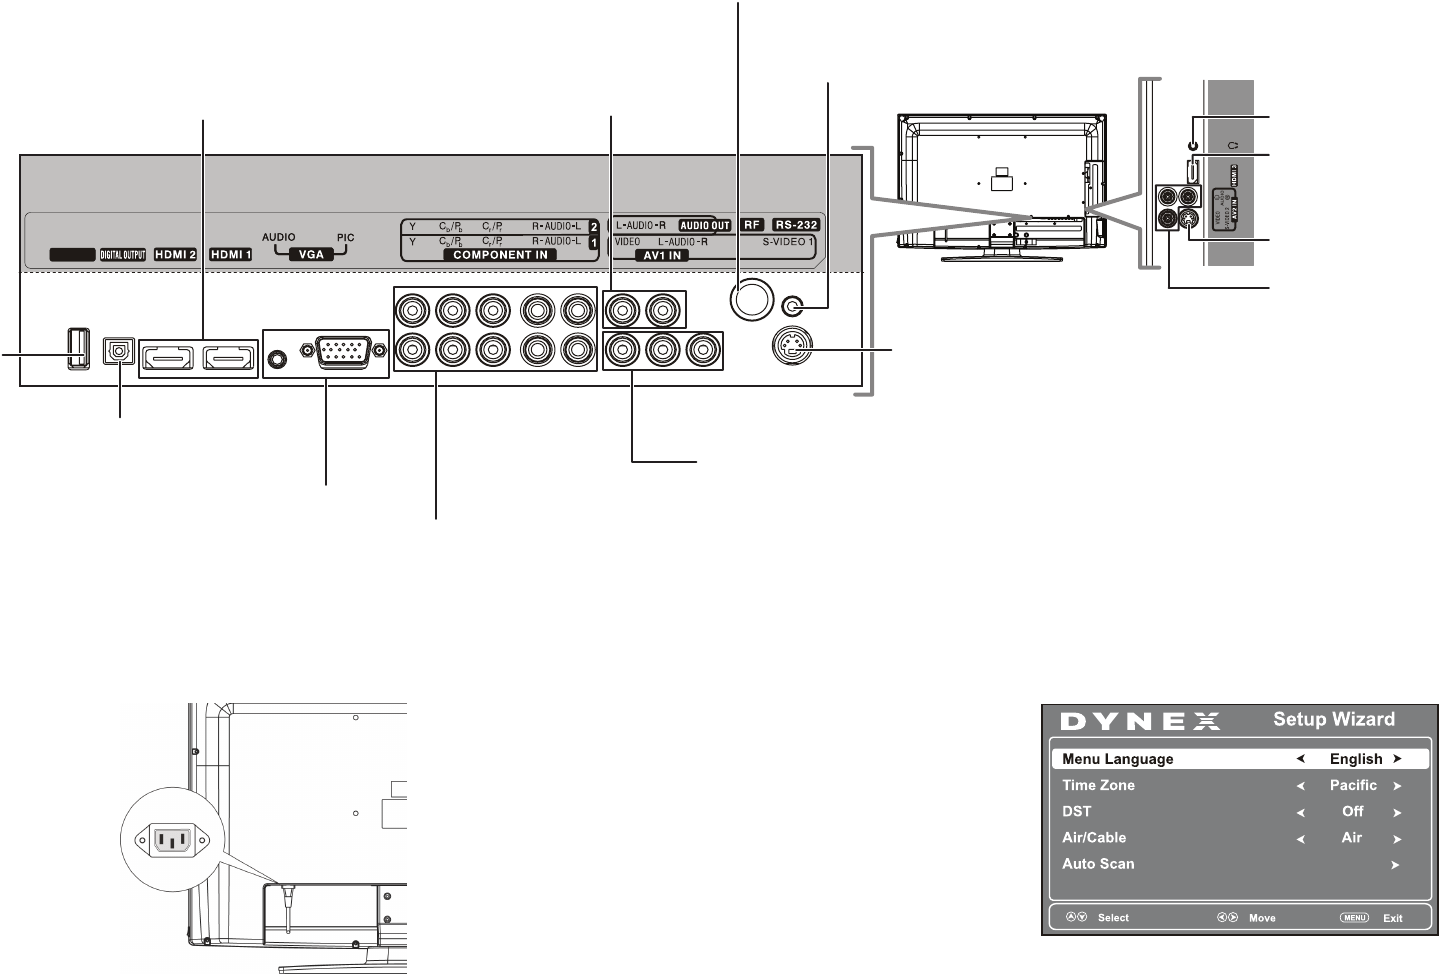 Page 2 of Dynex Flat Panel Television DX-L42-10A User